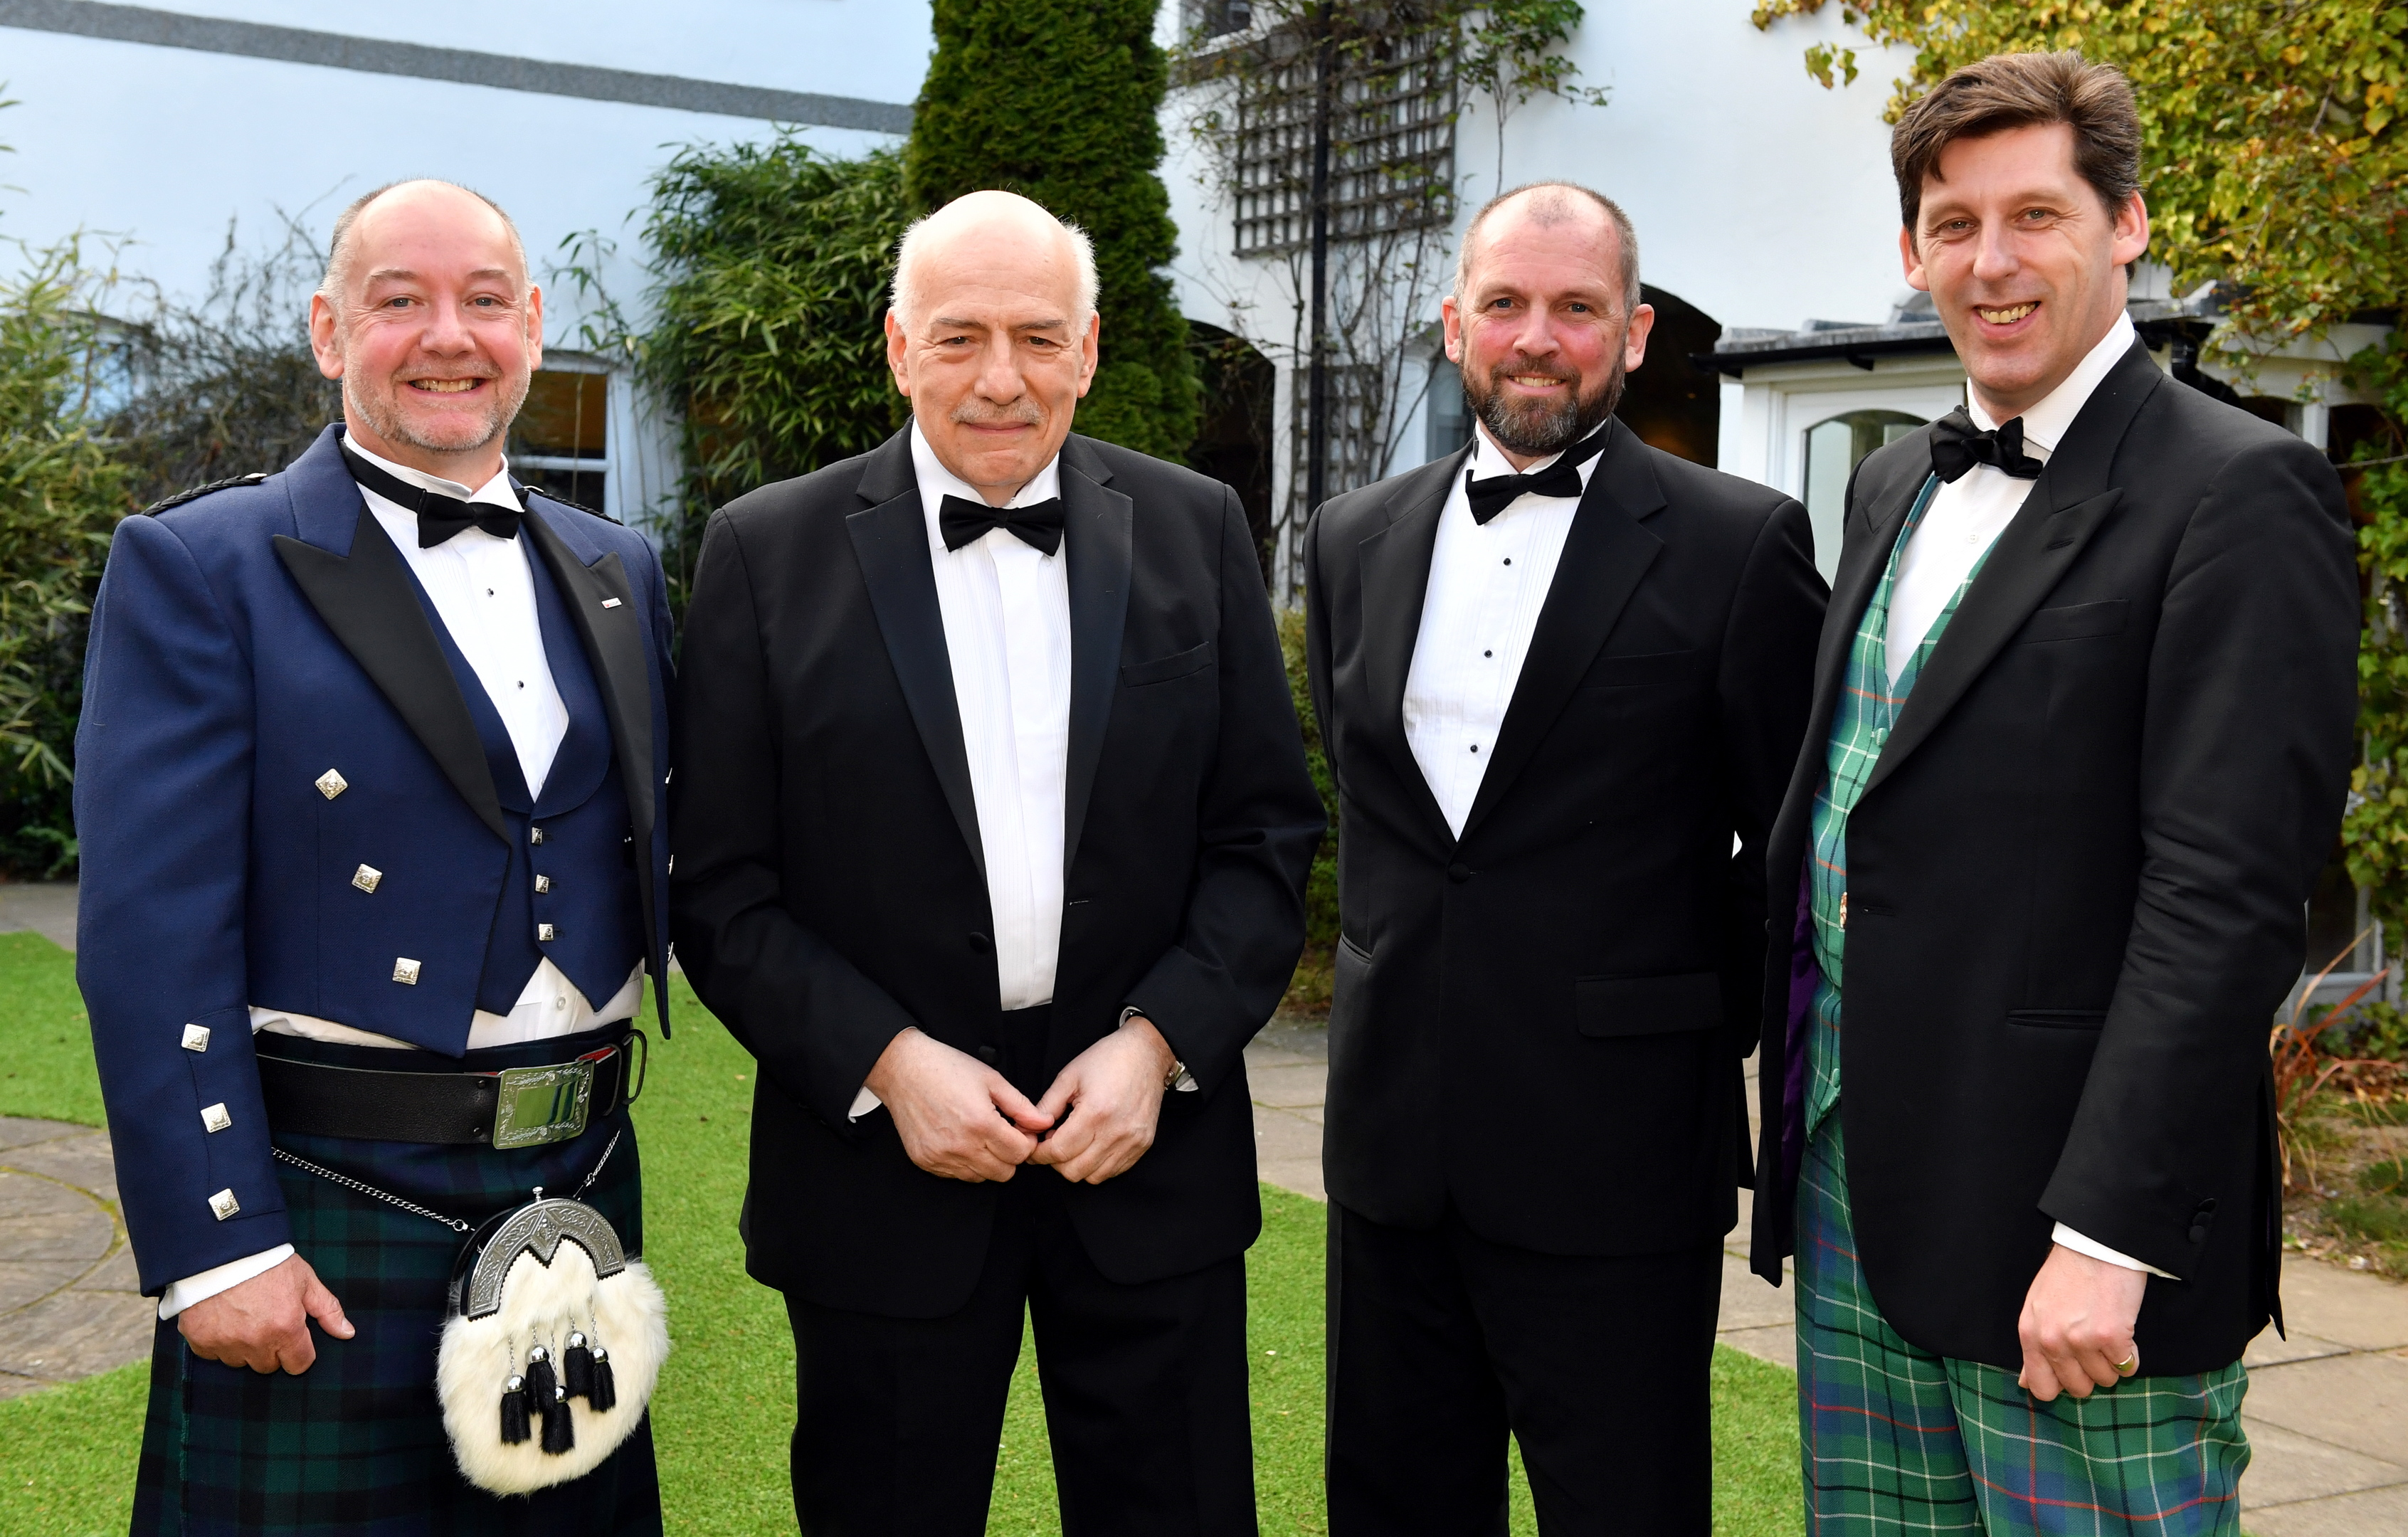 The annual Energy Institute dinner at the Marcliffe Hotel.      Pictured - L-R Chairman Laurie MacKay with speakers Tim Sebastion (BBC), Graham Stewart (CEO Faro) and Lord Ian Duncan of Springbank (Under Secretary of State for Scotland).